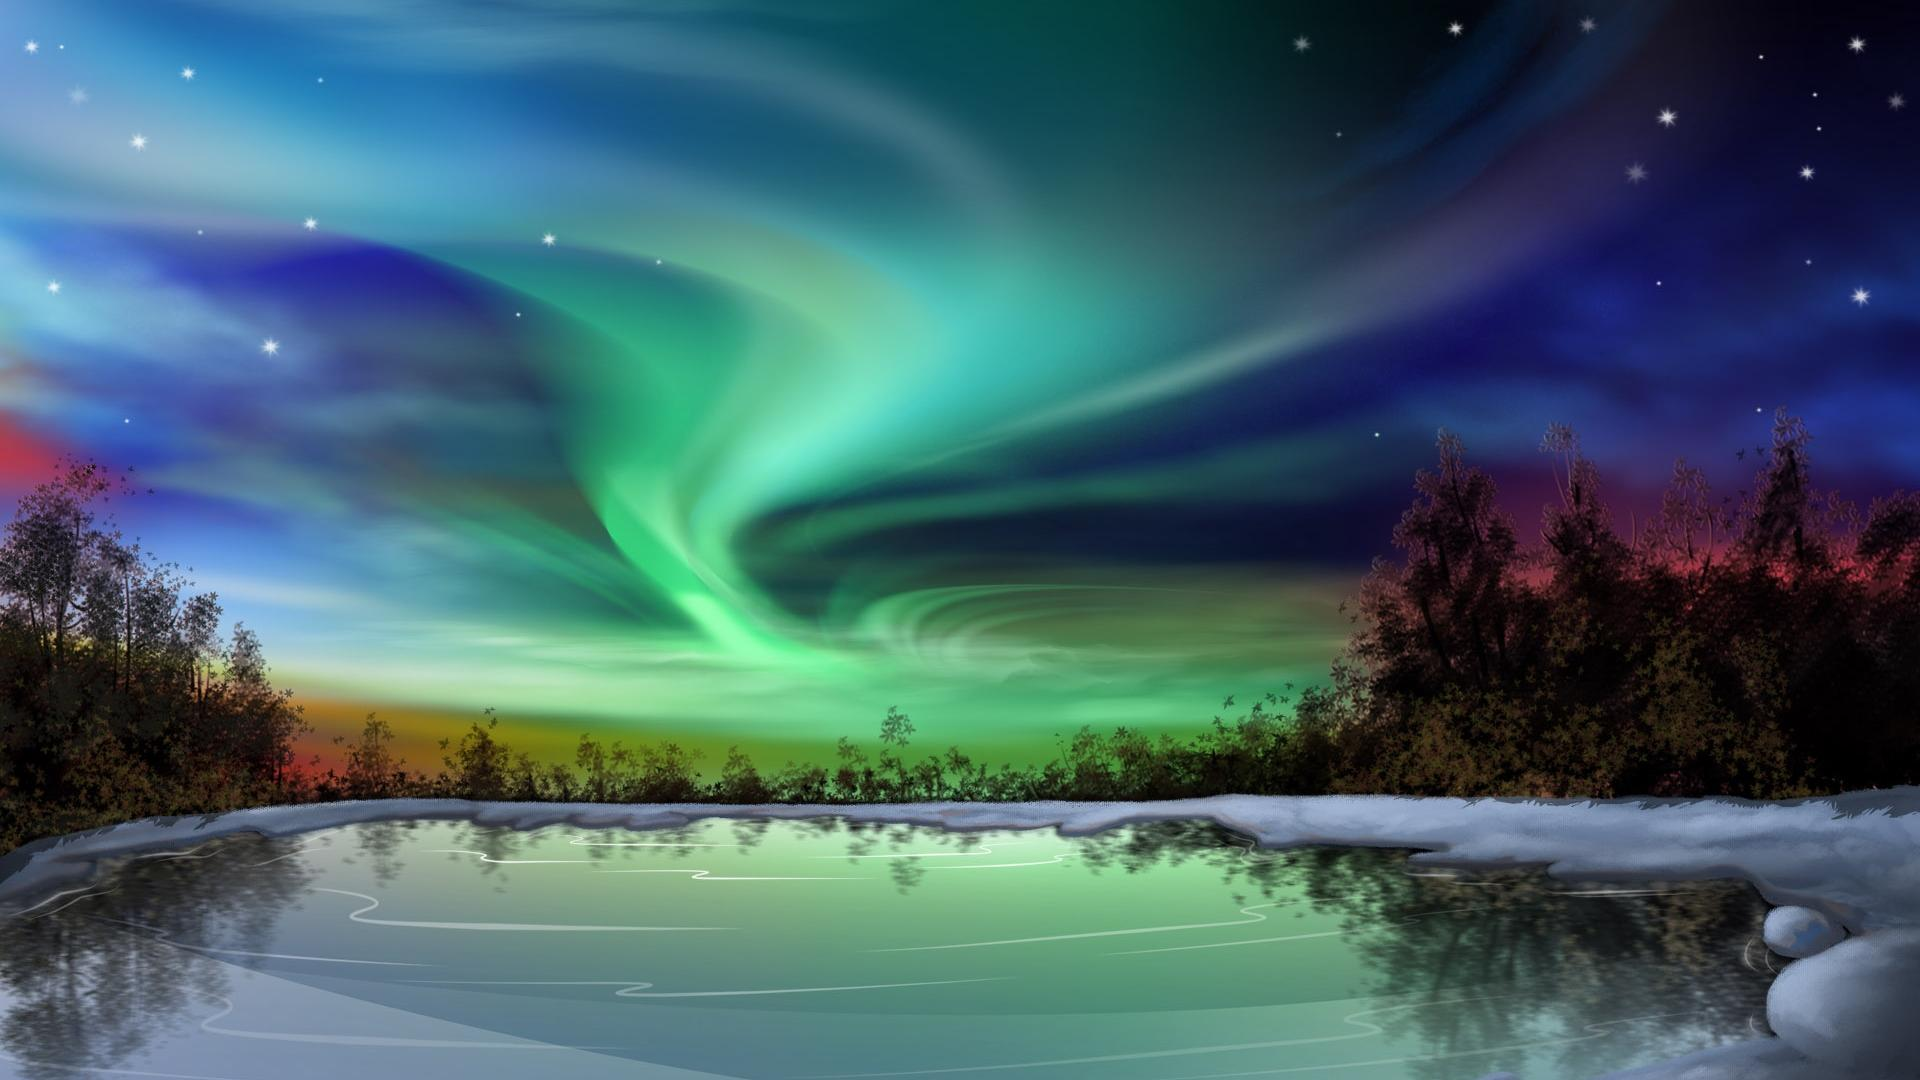 northern lights wallpaper desktop wallpapersafari. Black Bedroom Furniture Sets. Home Design Ideas